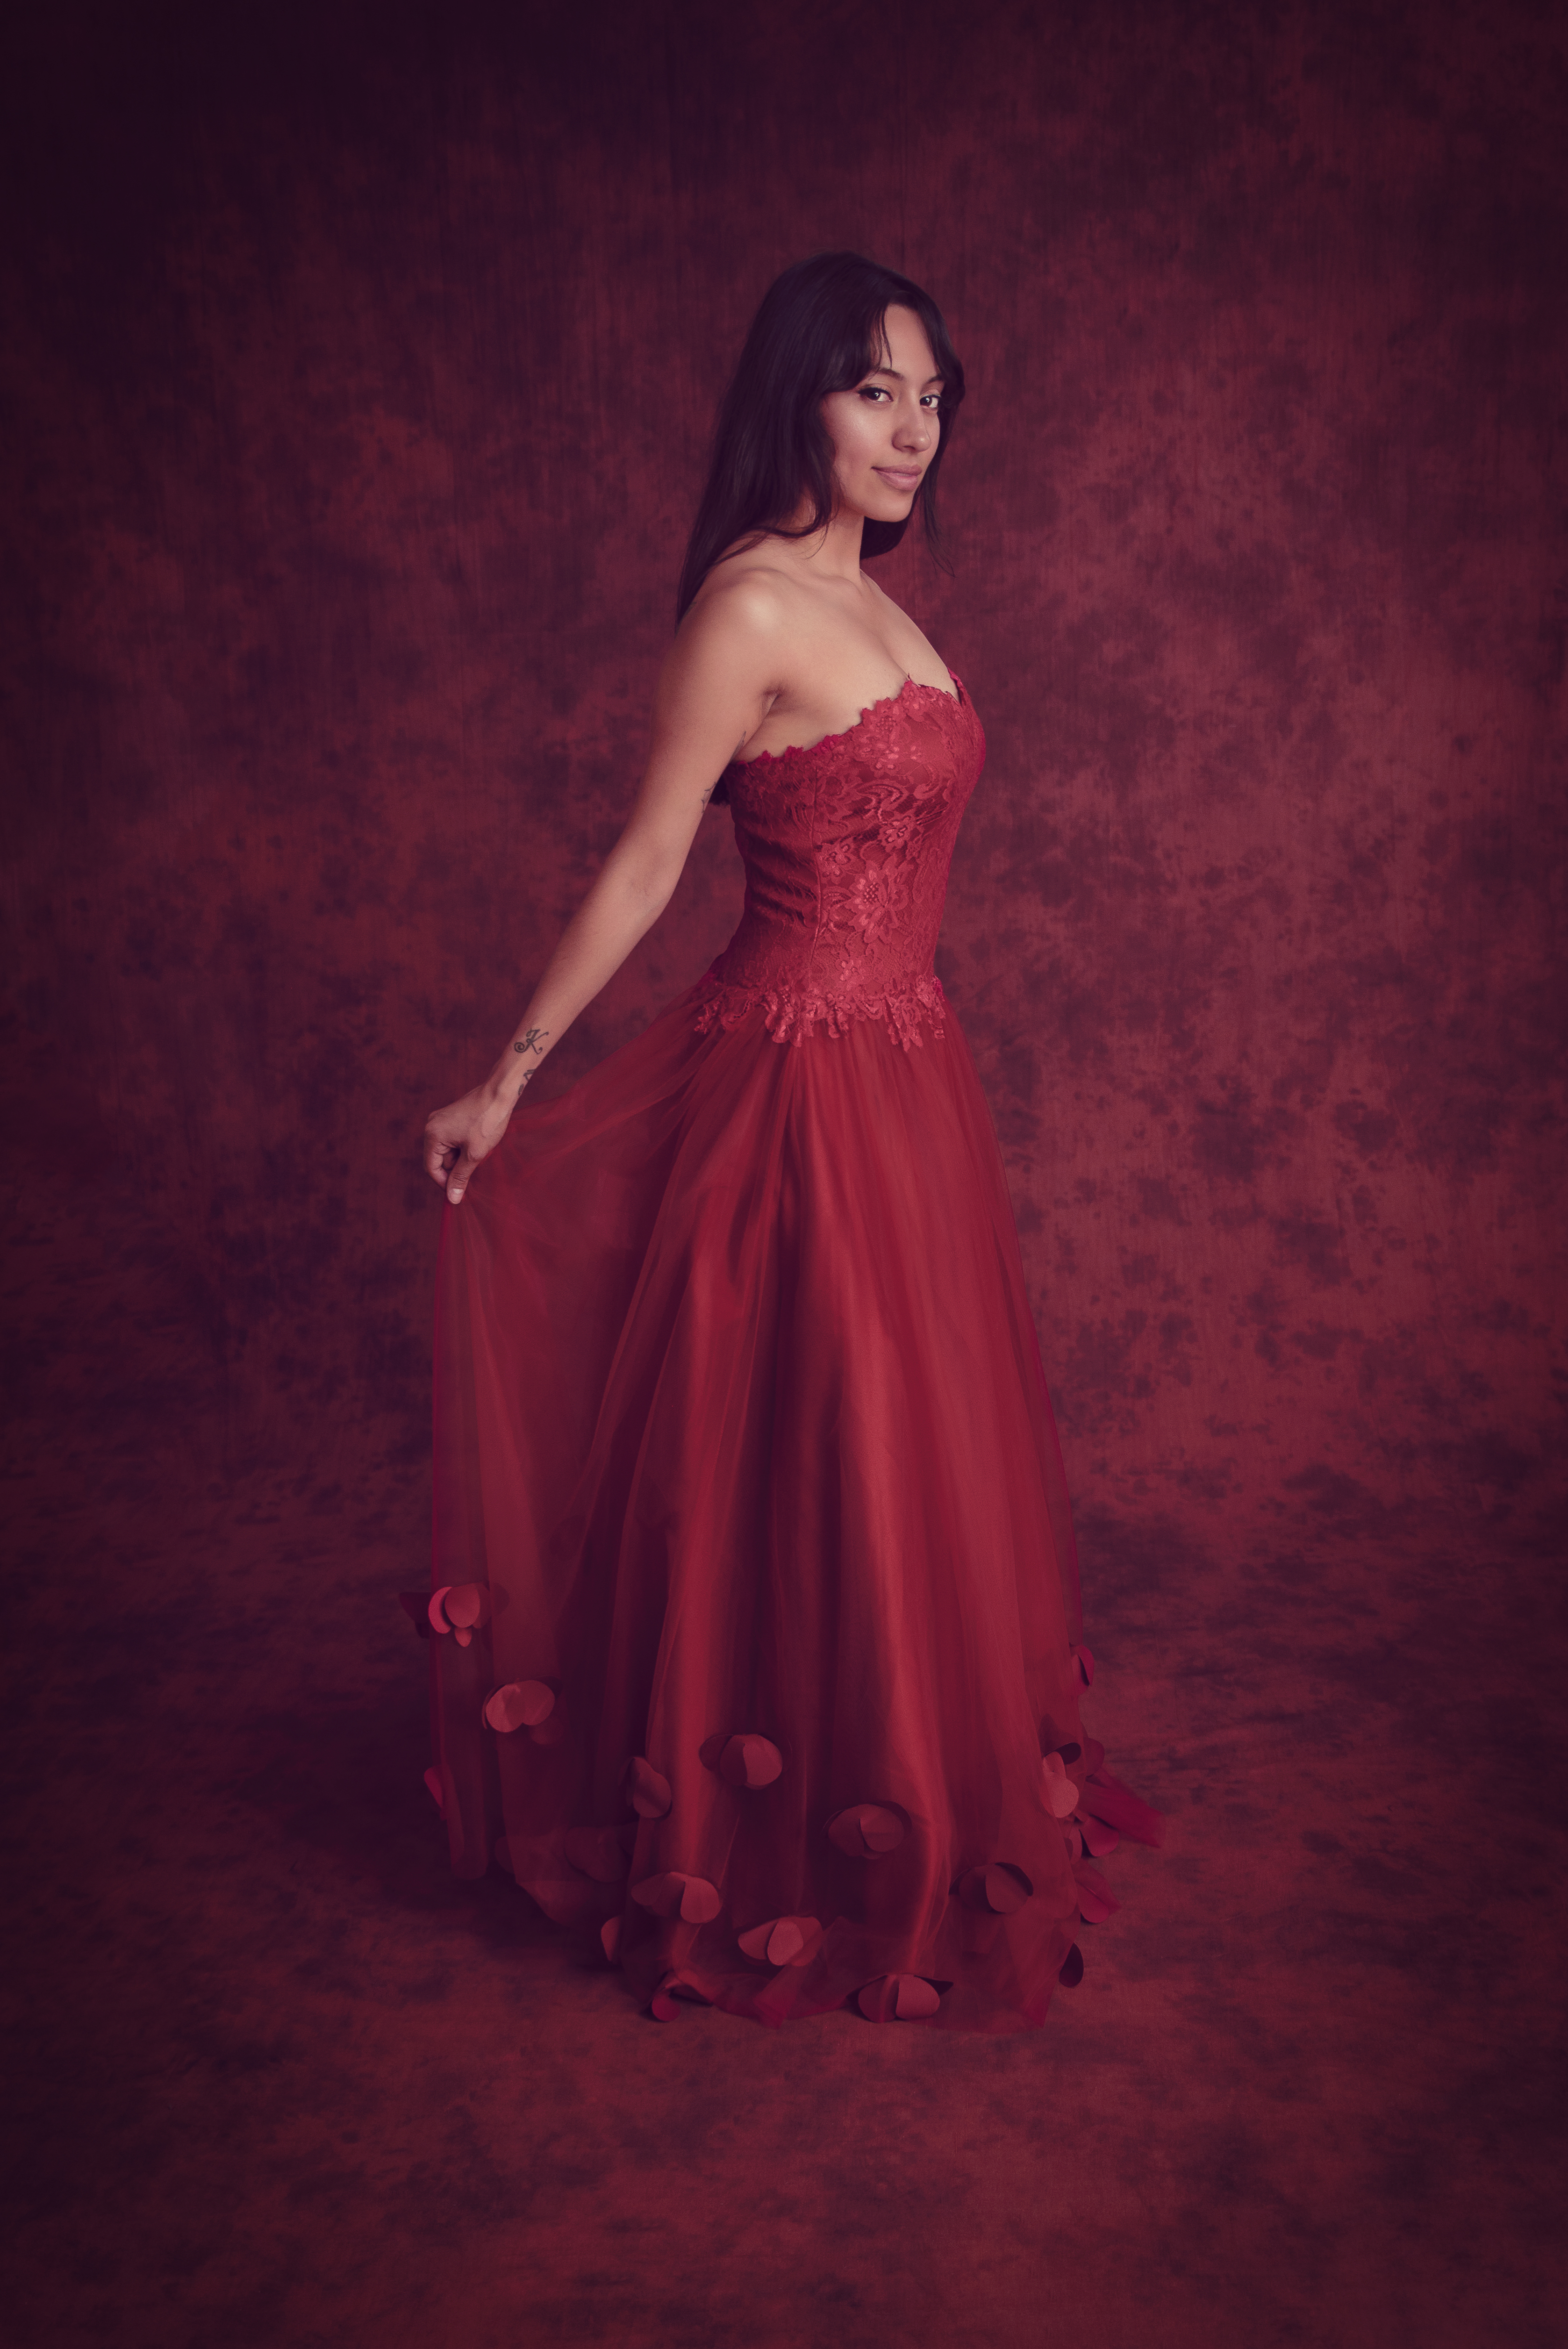 savage sedona red crushed muslin background elegant portrait by mike mcgee photography